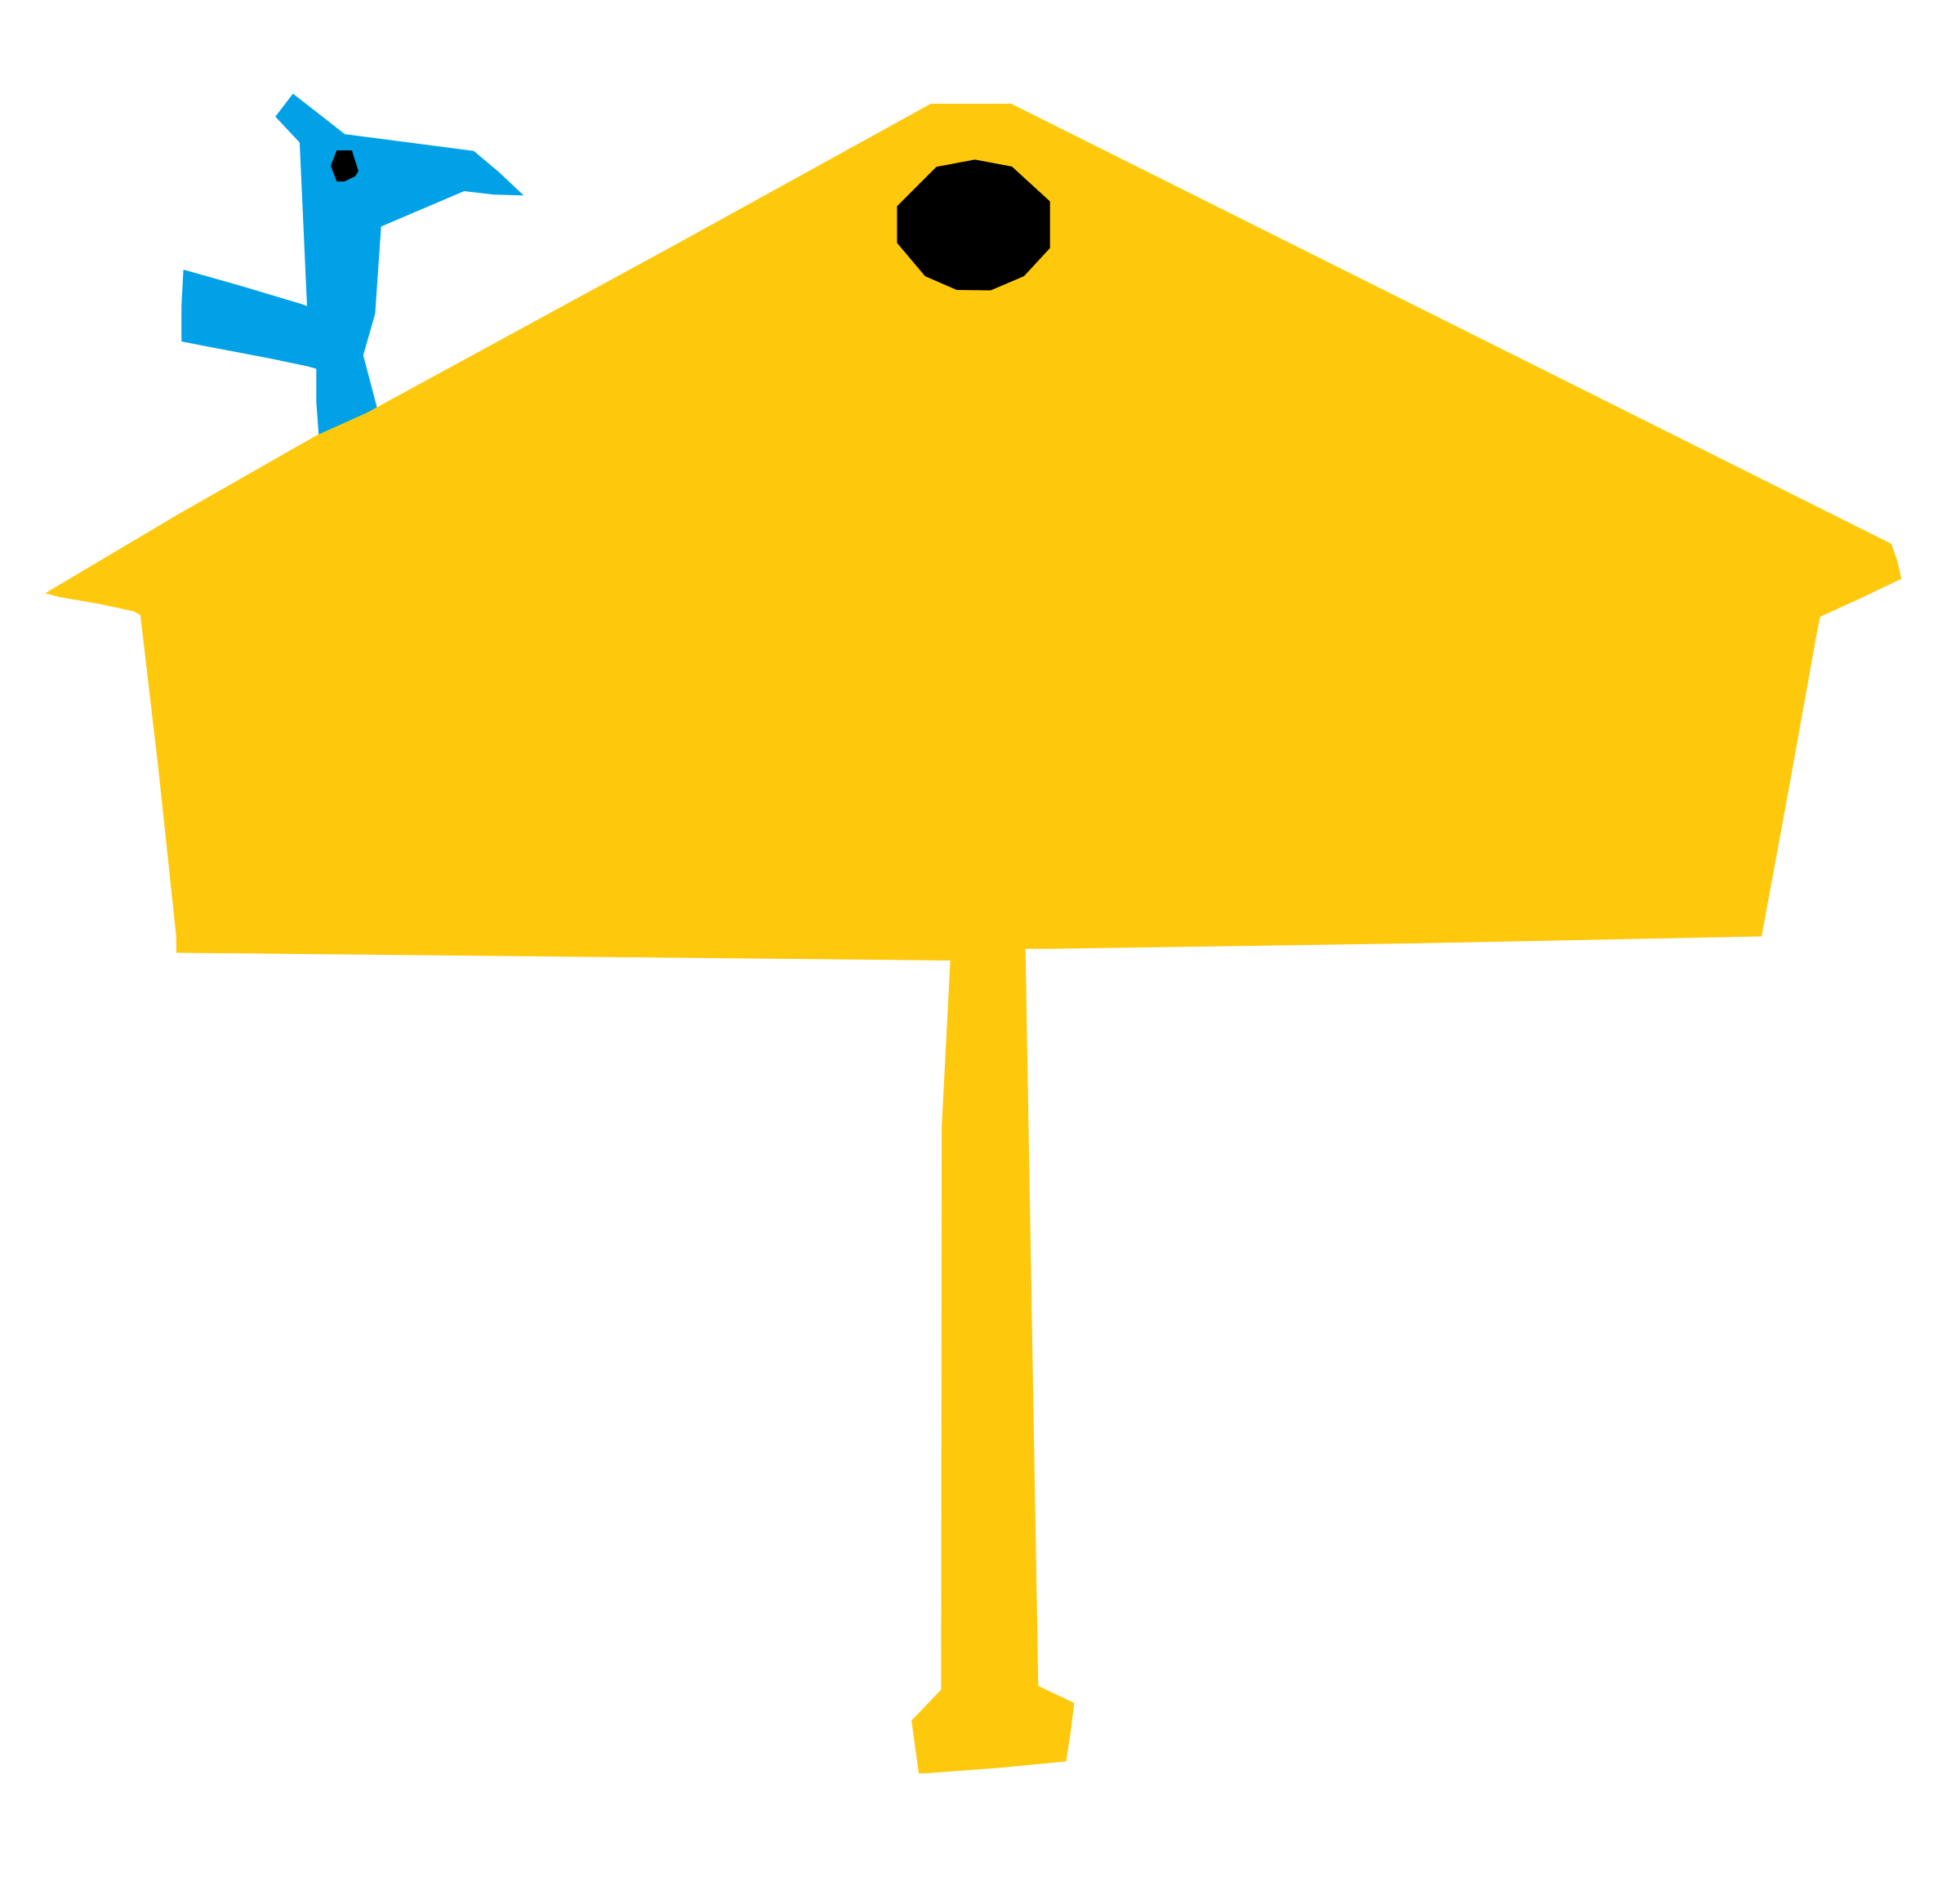 Birdhouse refixed by Lazur URH